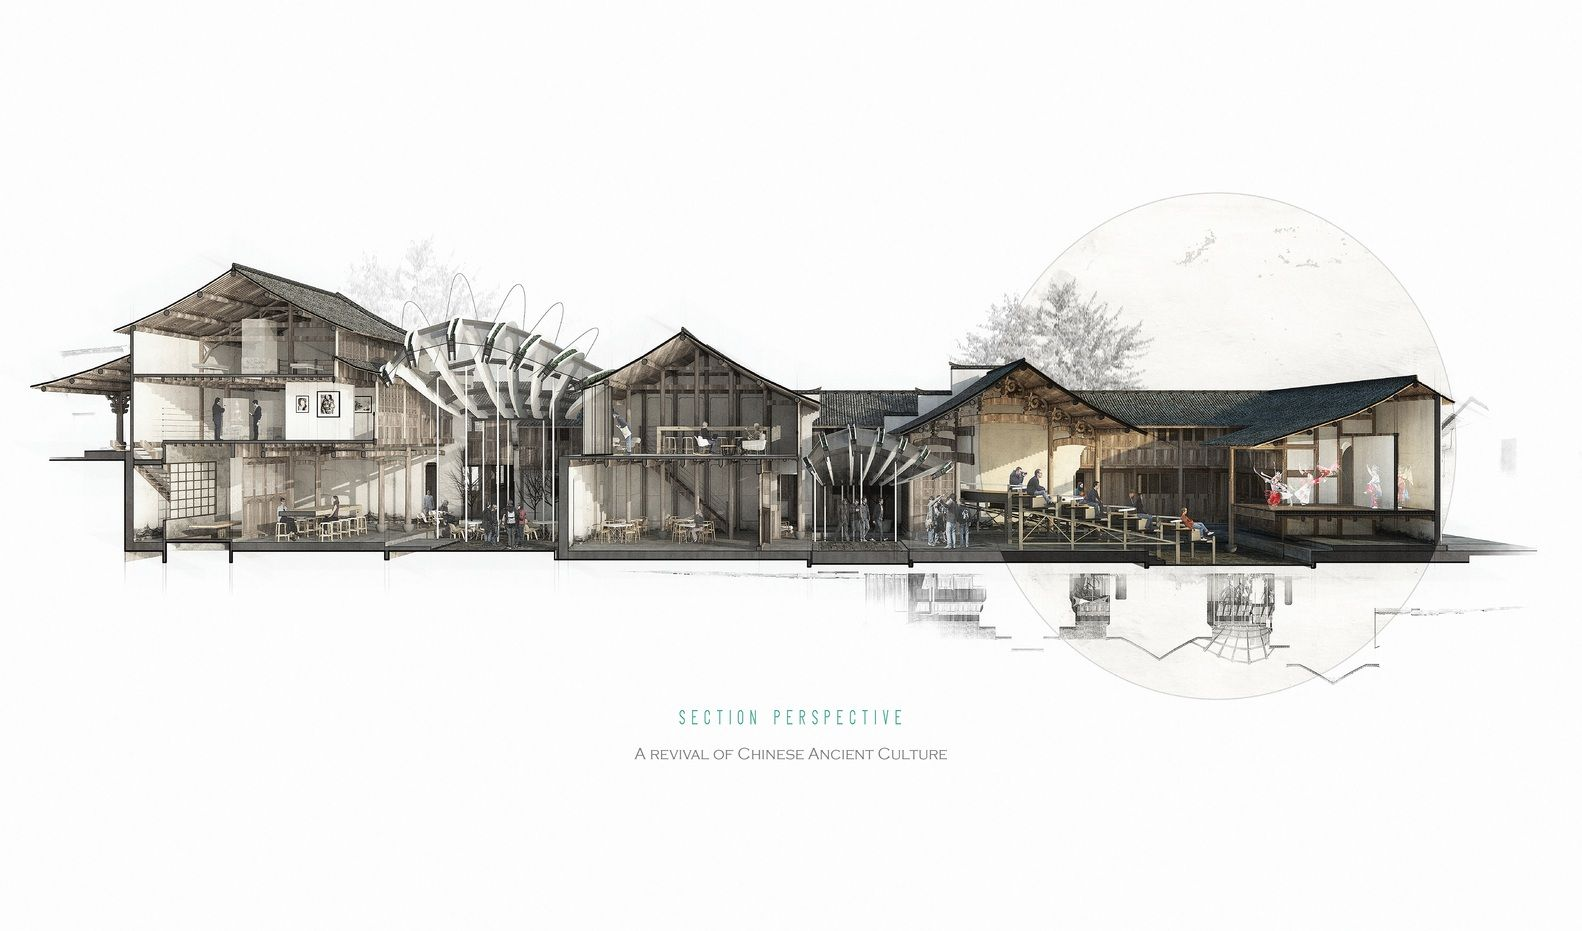 Gallery Of How Architectural Drawingu2014In All Its Formsu2014Can Help Us See The